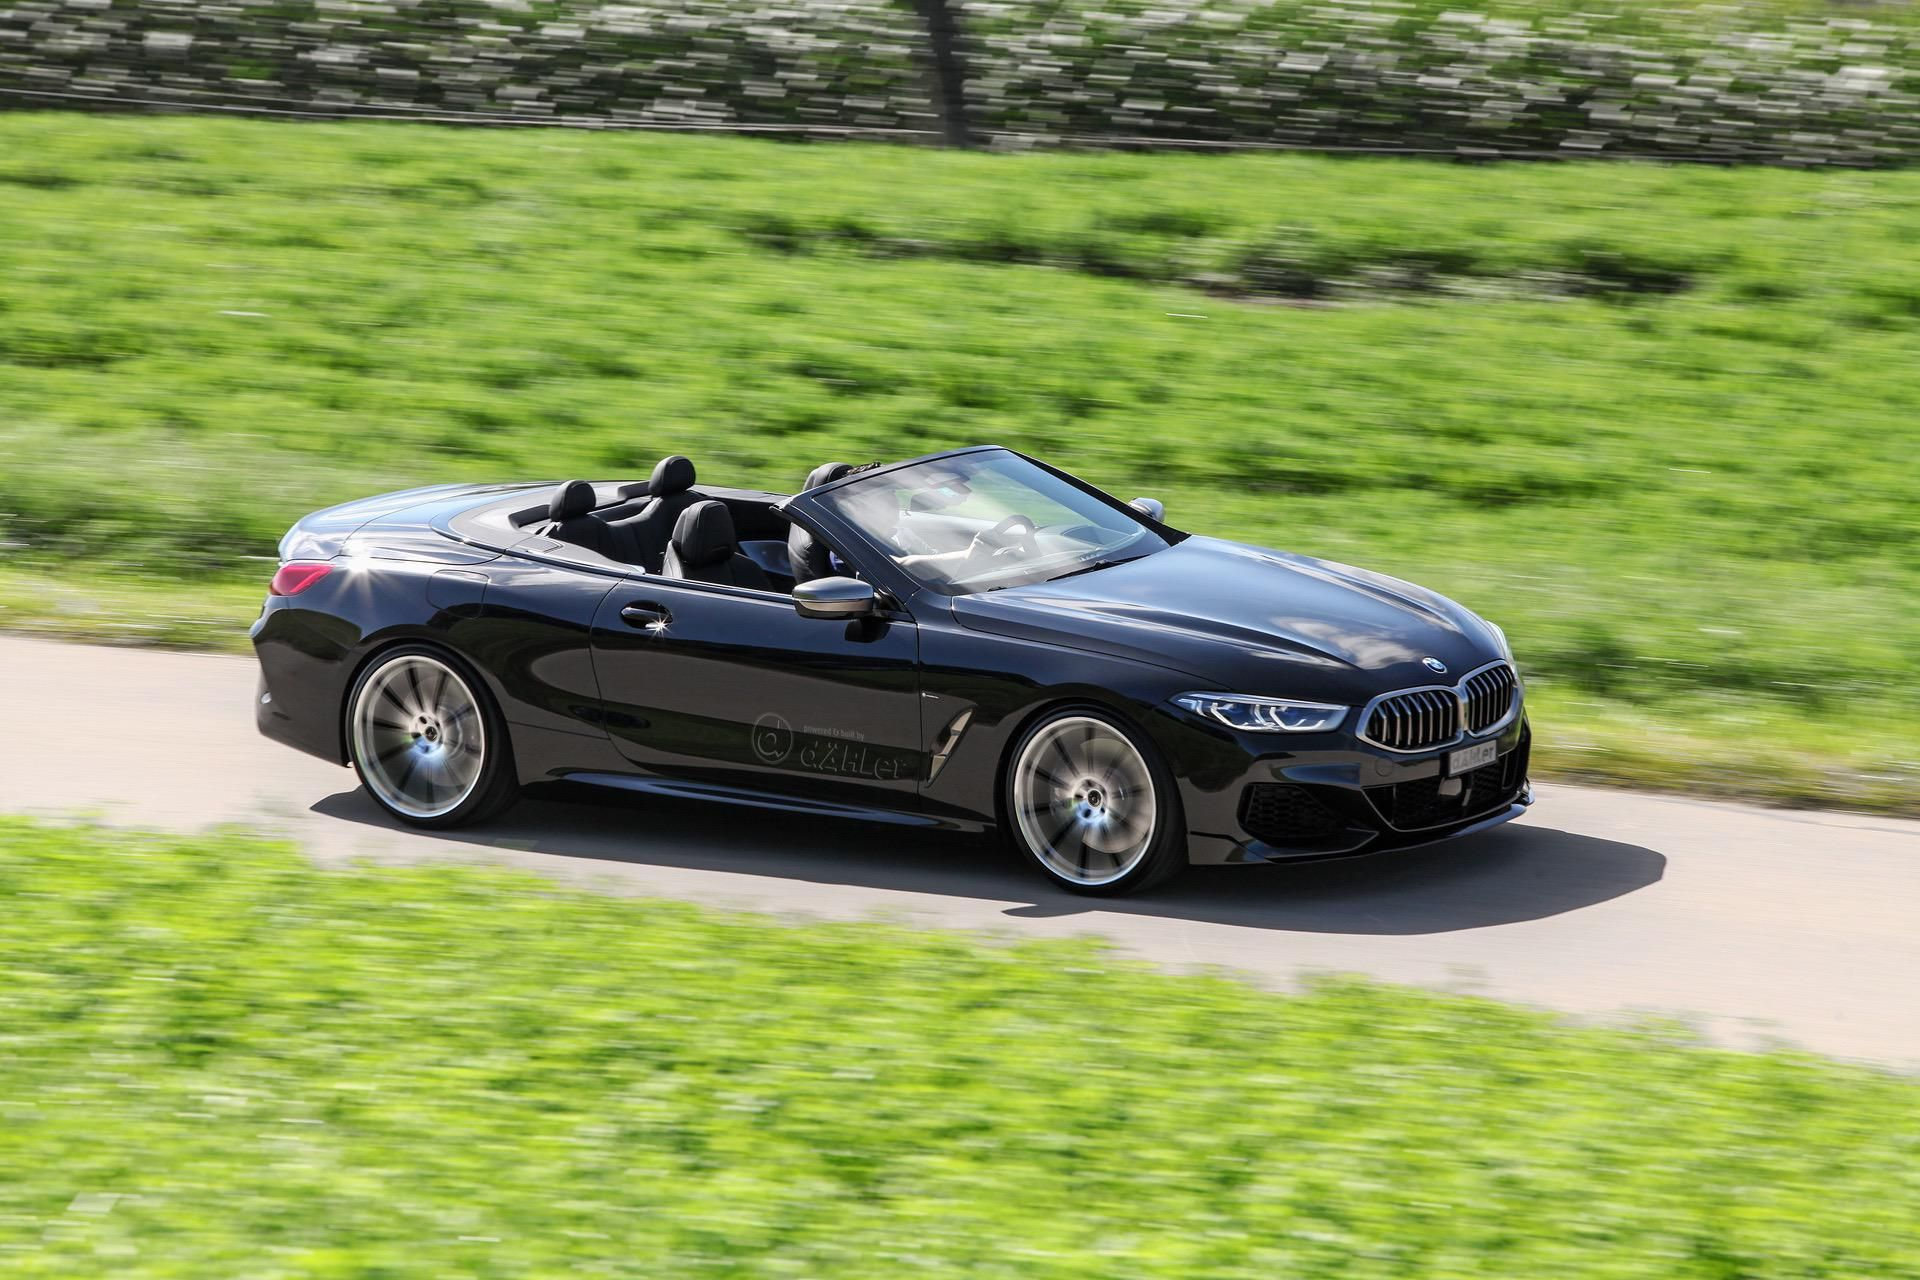 Bmw 8 Series Convertible Dahler Tuning Brings The M850i To 627